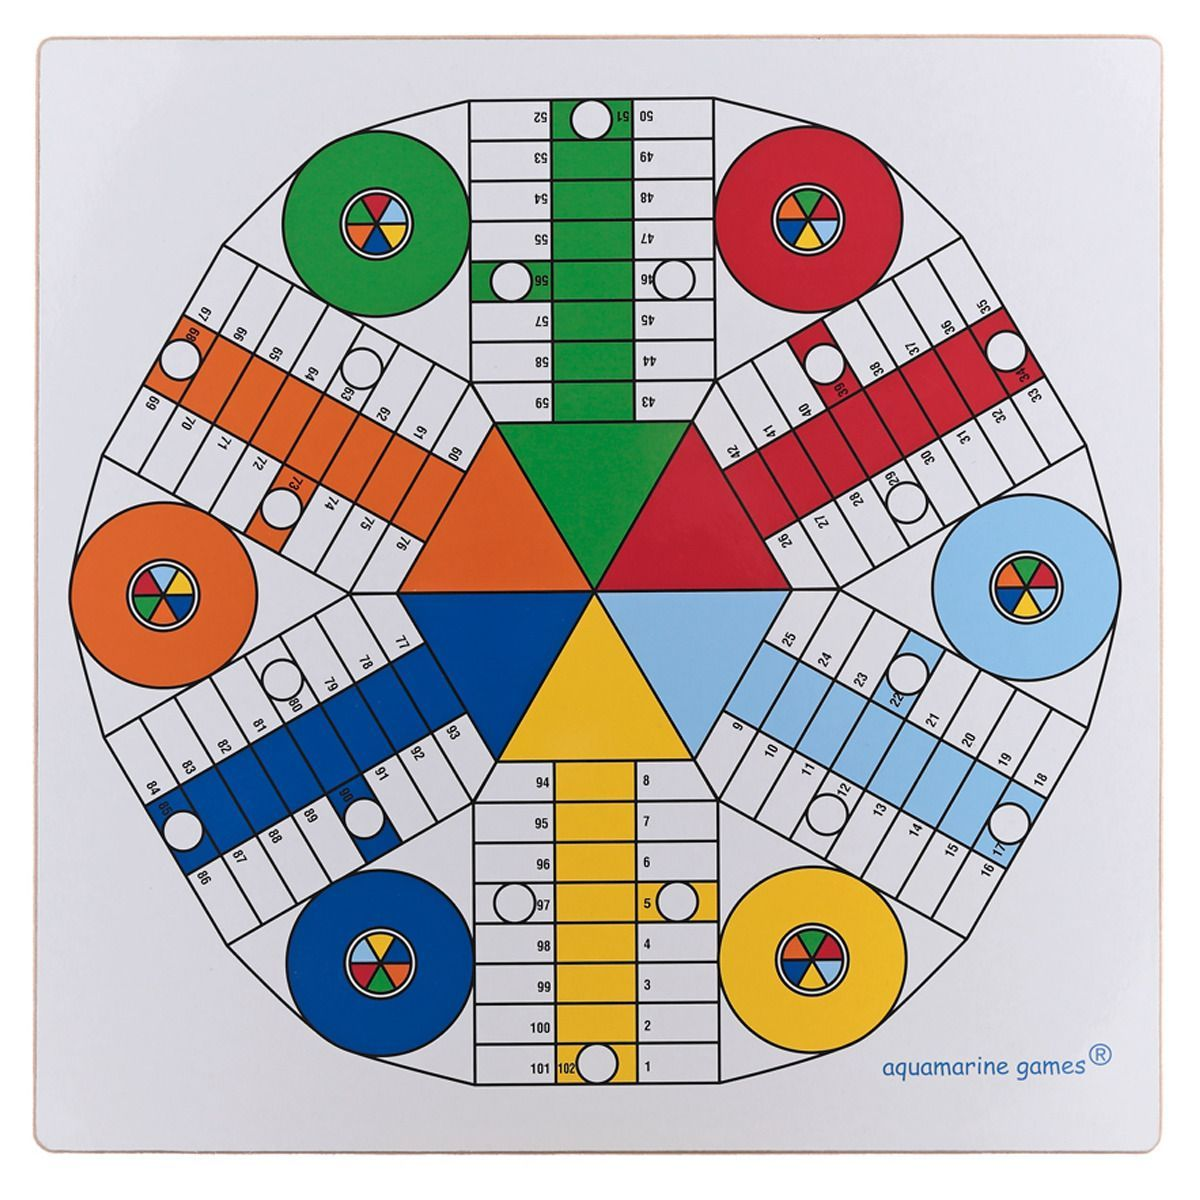 Parchis By Ernesto Boixader Gil On Genially In 2020 Classic Board Games Printable Board Games Board Games